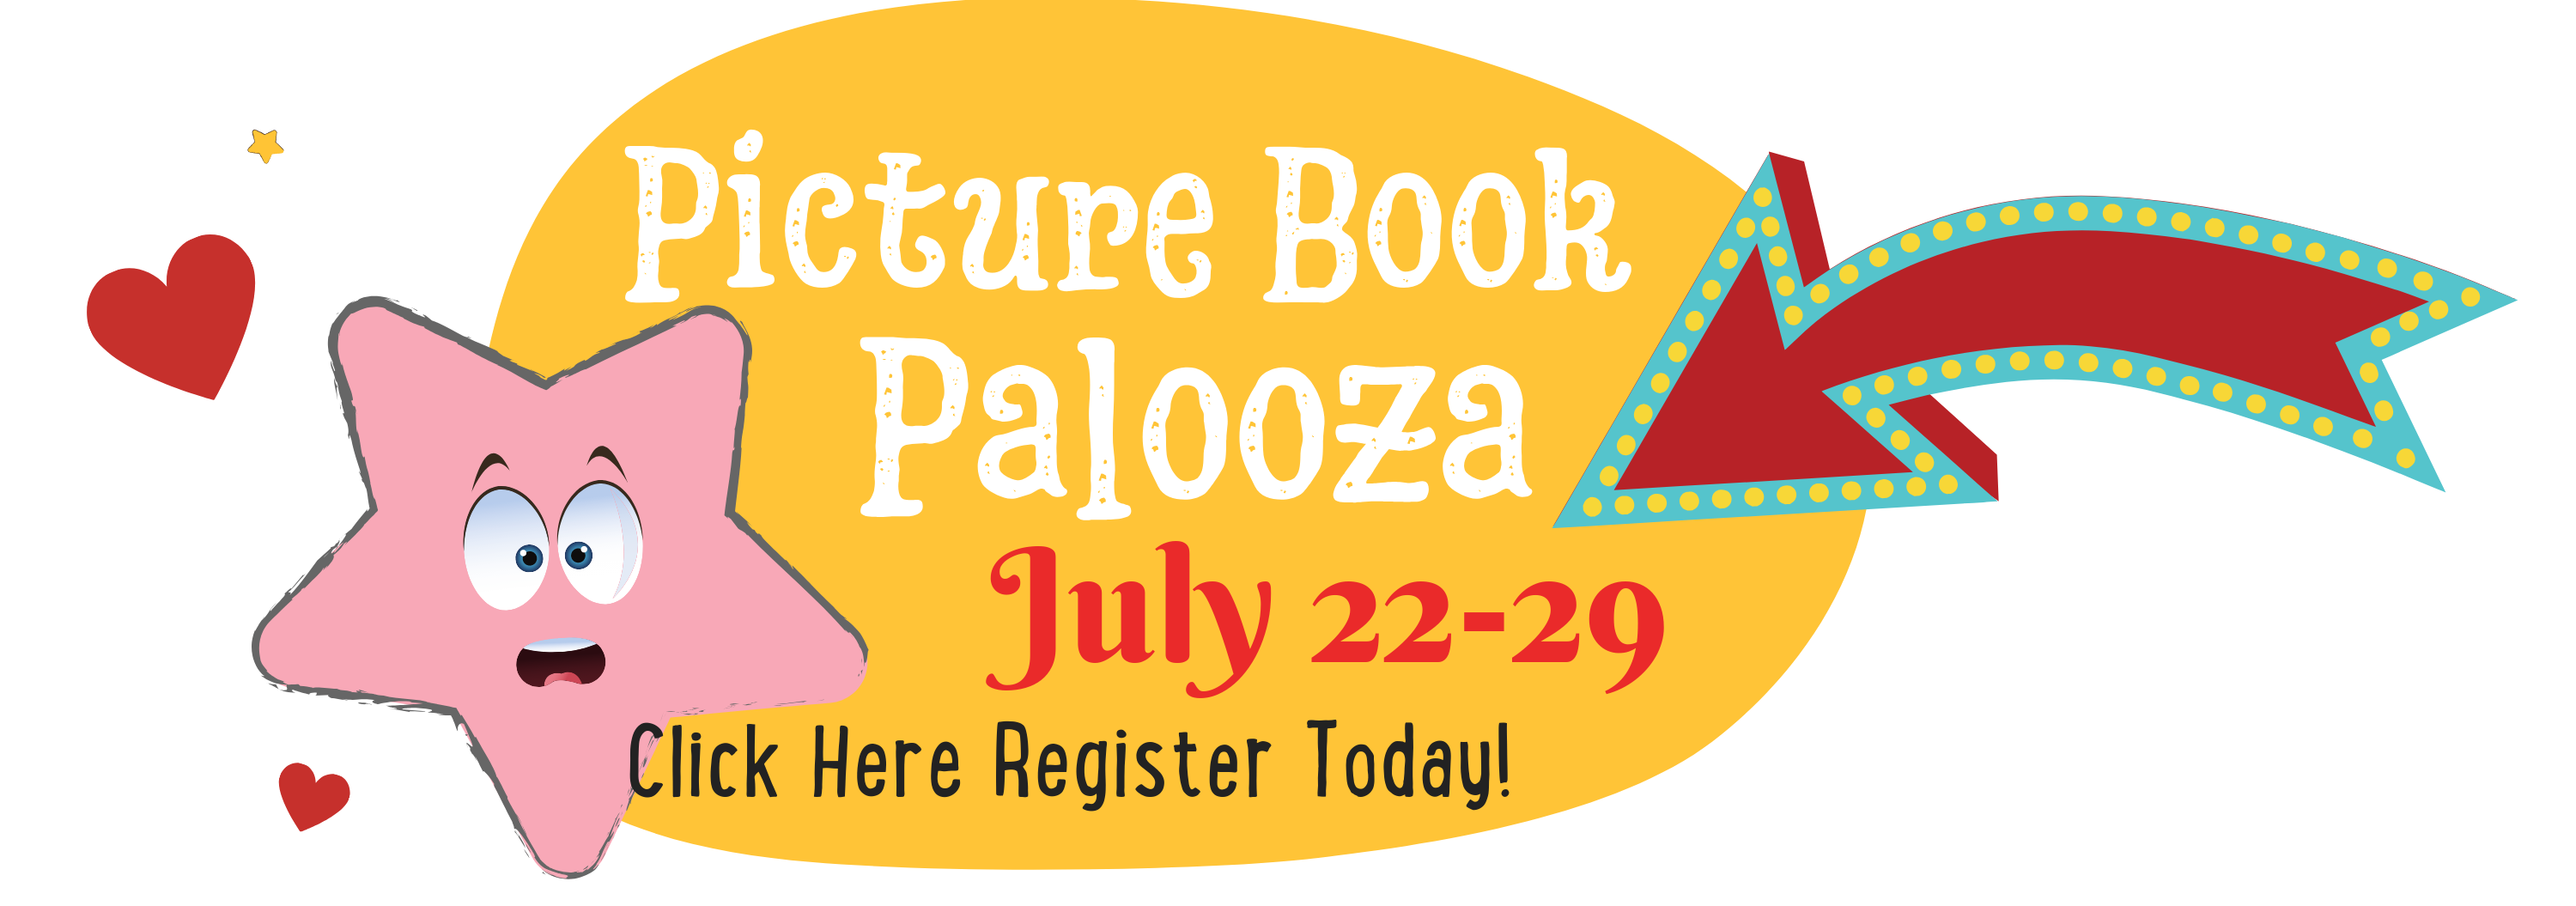 Registration for Pictre Book Palooza at the Children's Book Academy